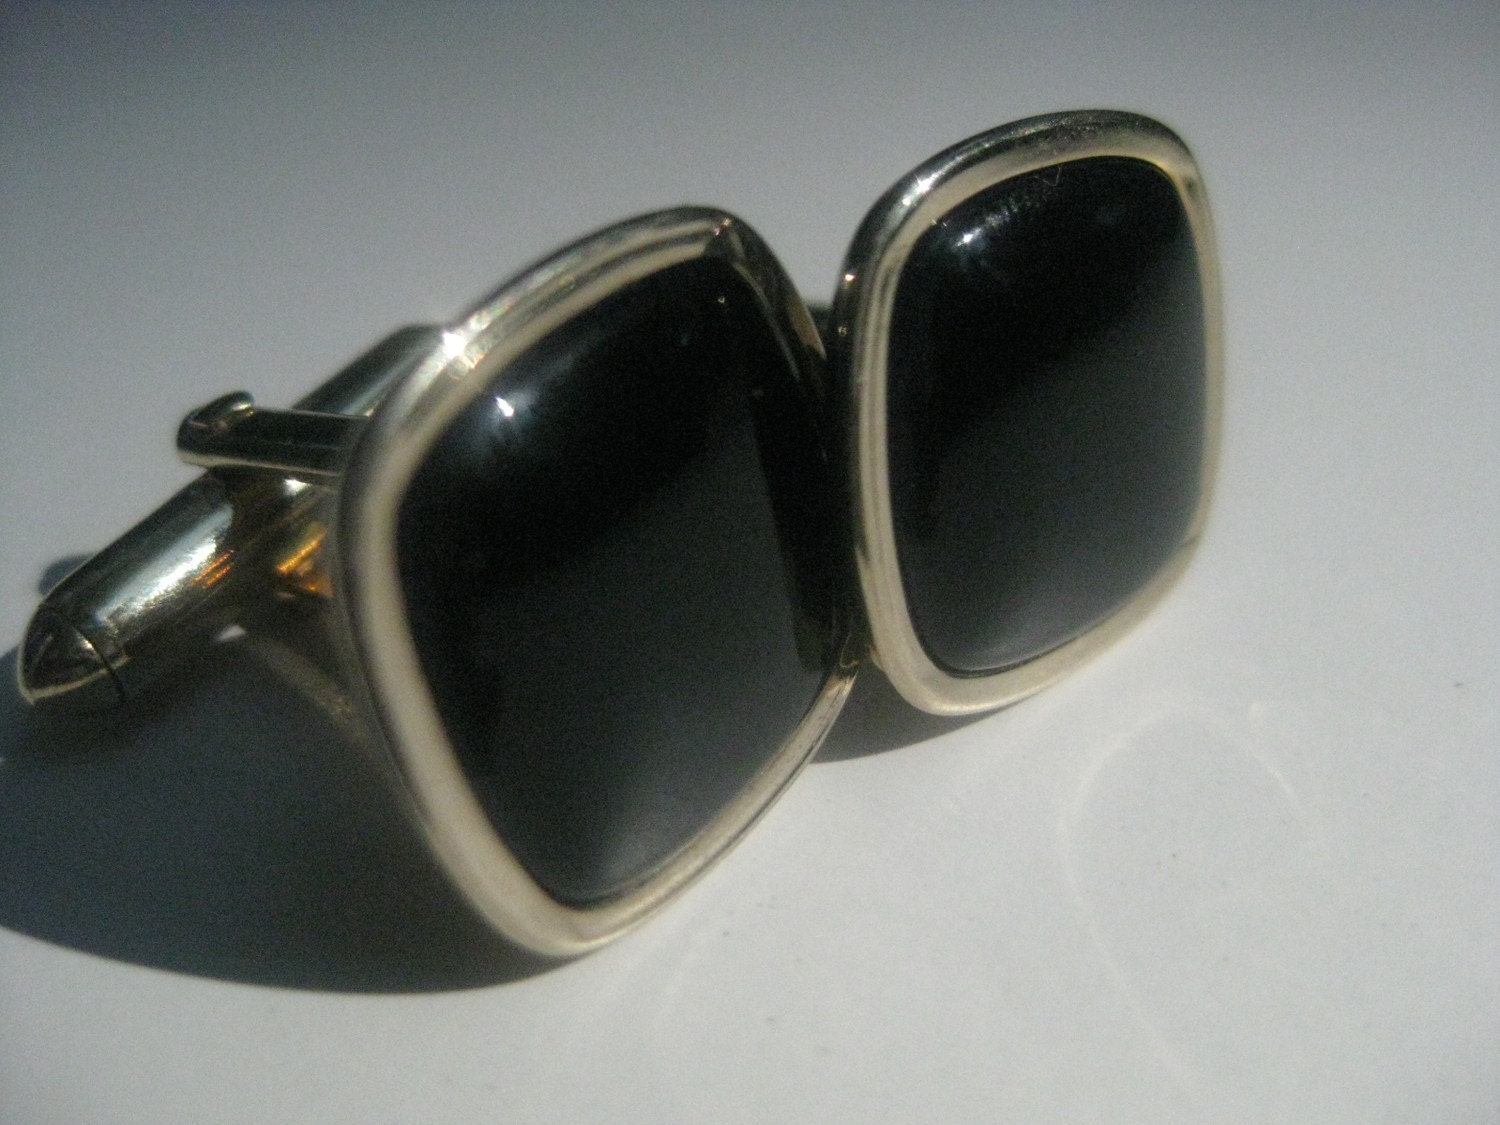 Vintage Swank Cufflinks Black Onyx and Gold Tone Metal